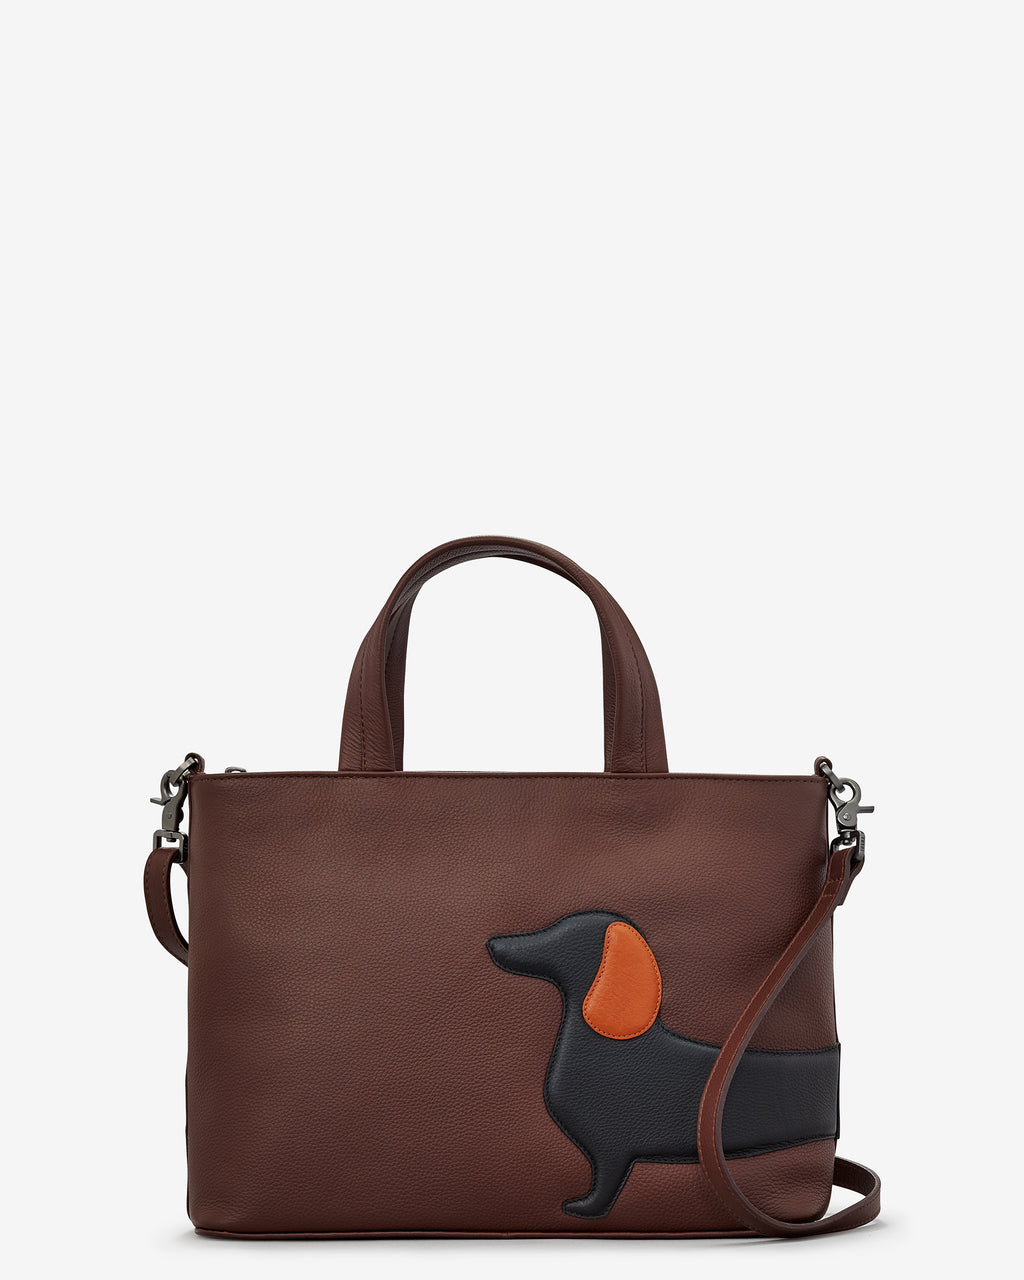 Delilah The Dachshund Leather Grab Bag